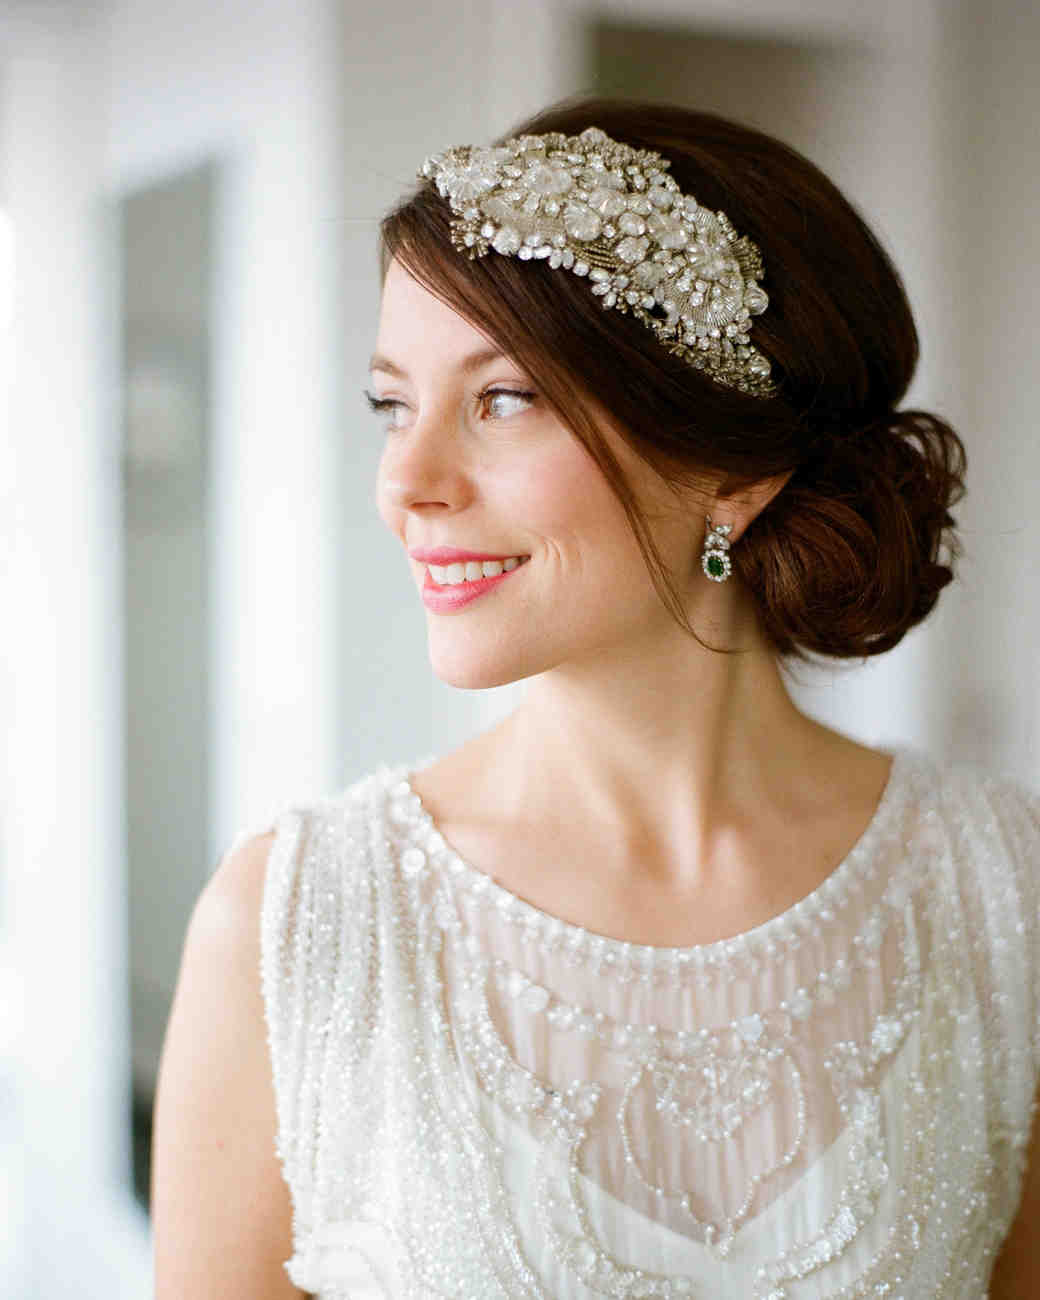 3 Gorgeous Hairstyles For Your Wedding Day images